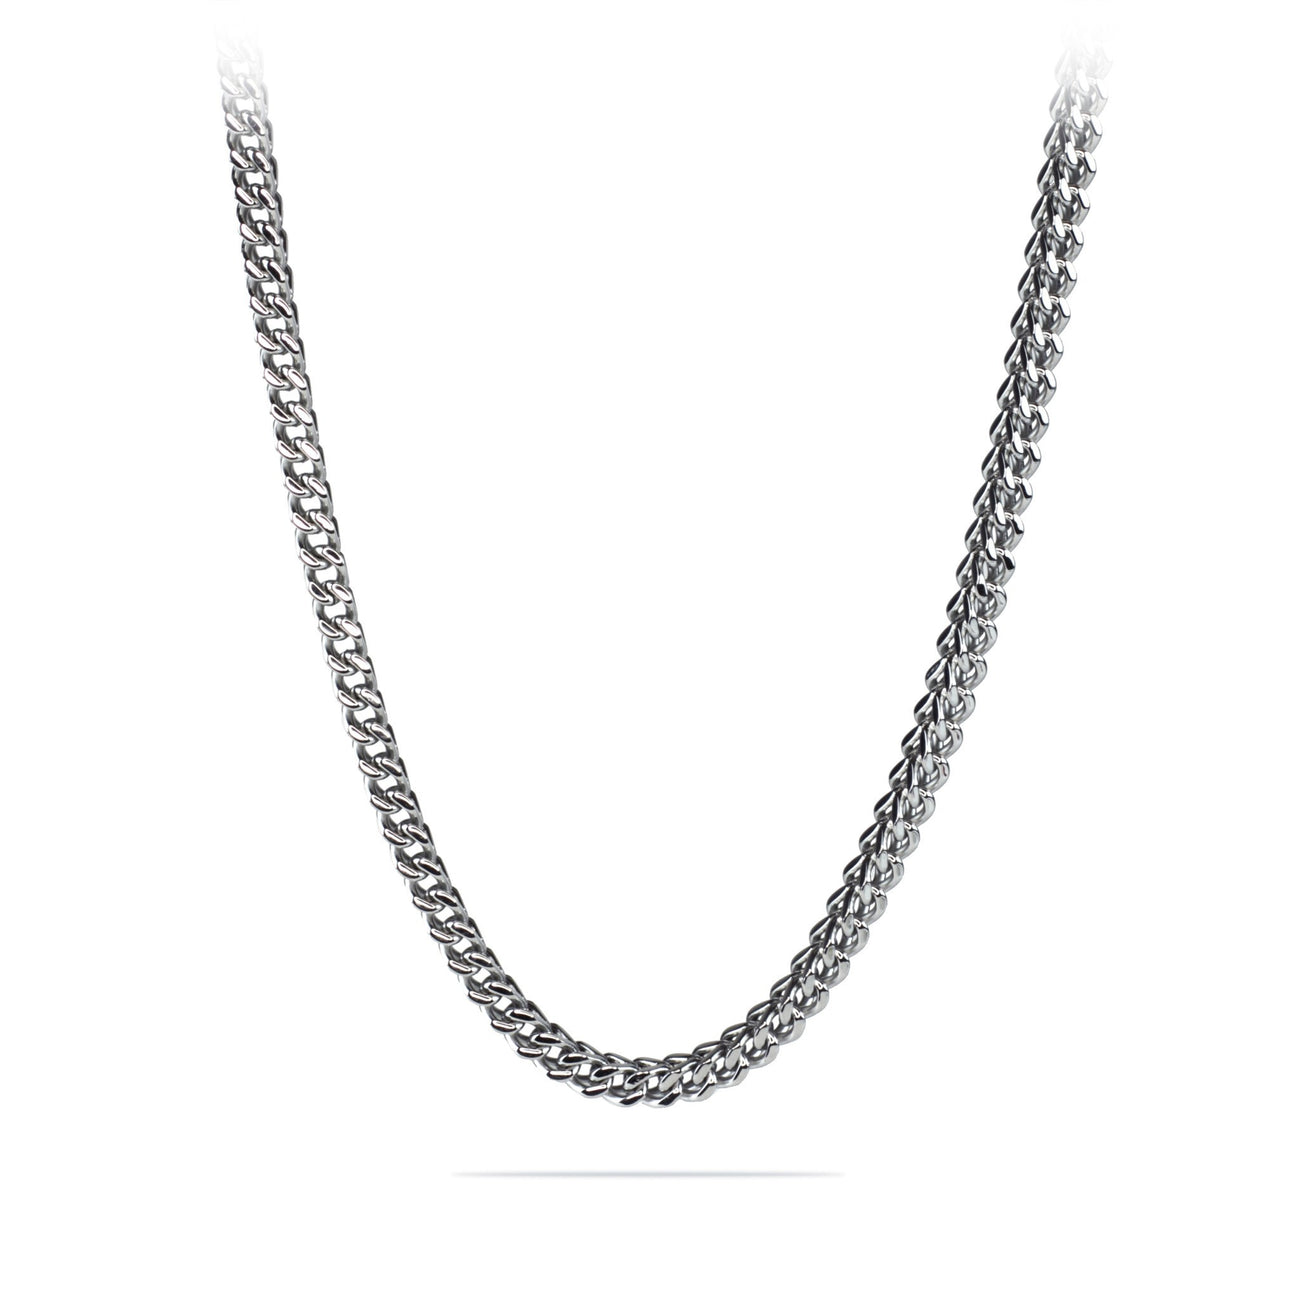 Mens 6mm Silver Stainless Steel Franco Cuban Box Chain Link Necklace , Chains, SpicyIce - 1